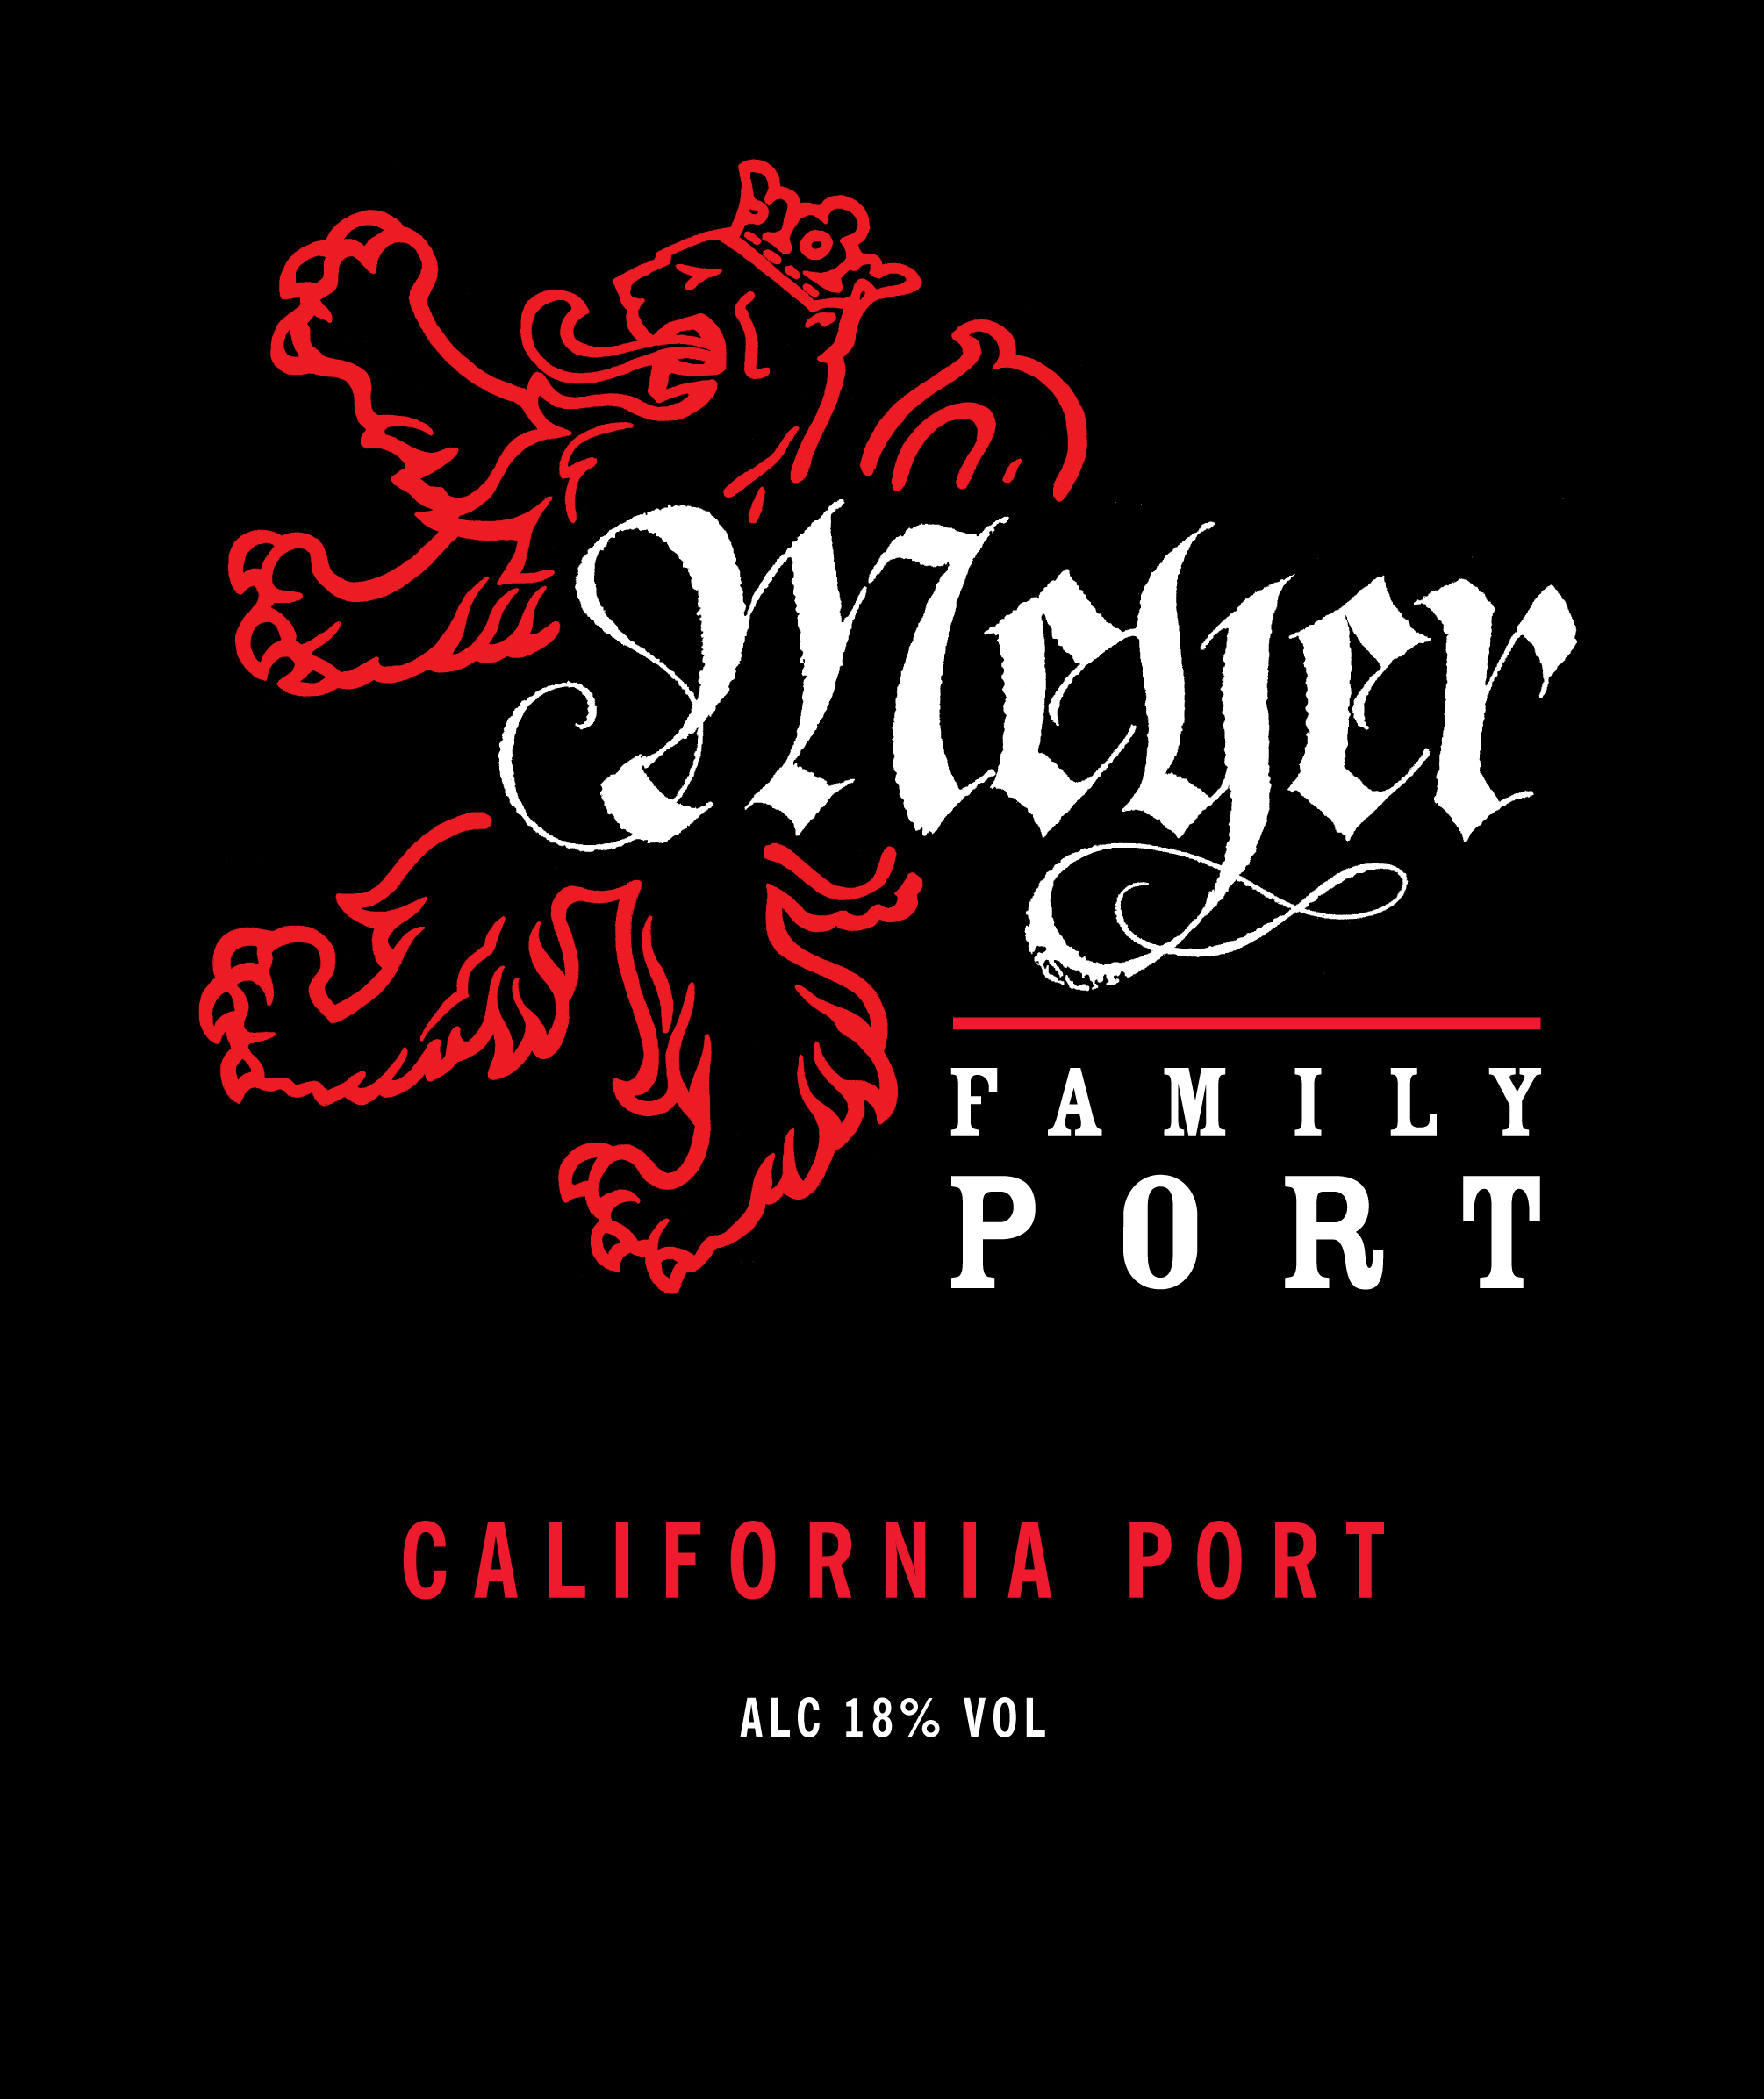 Product Image for Meyer Family Port